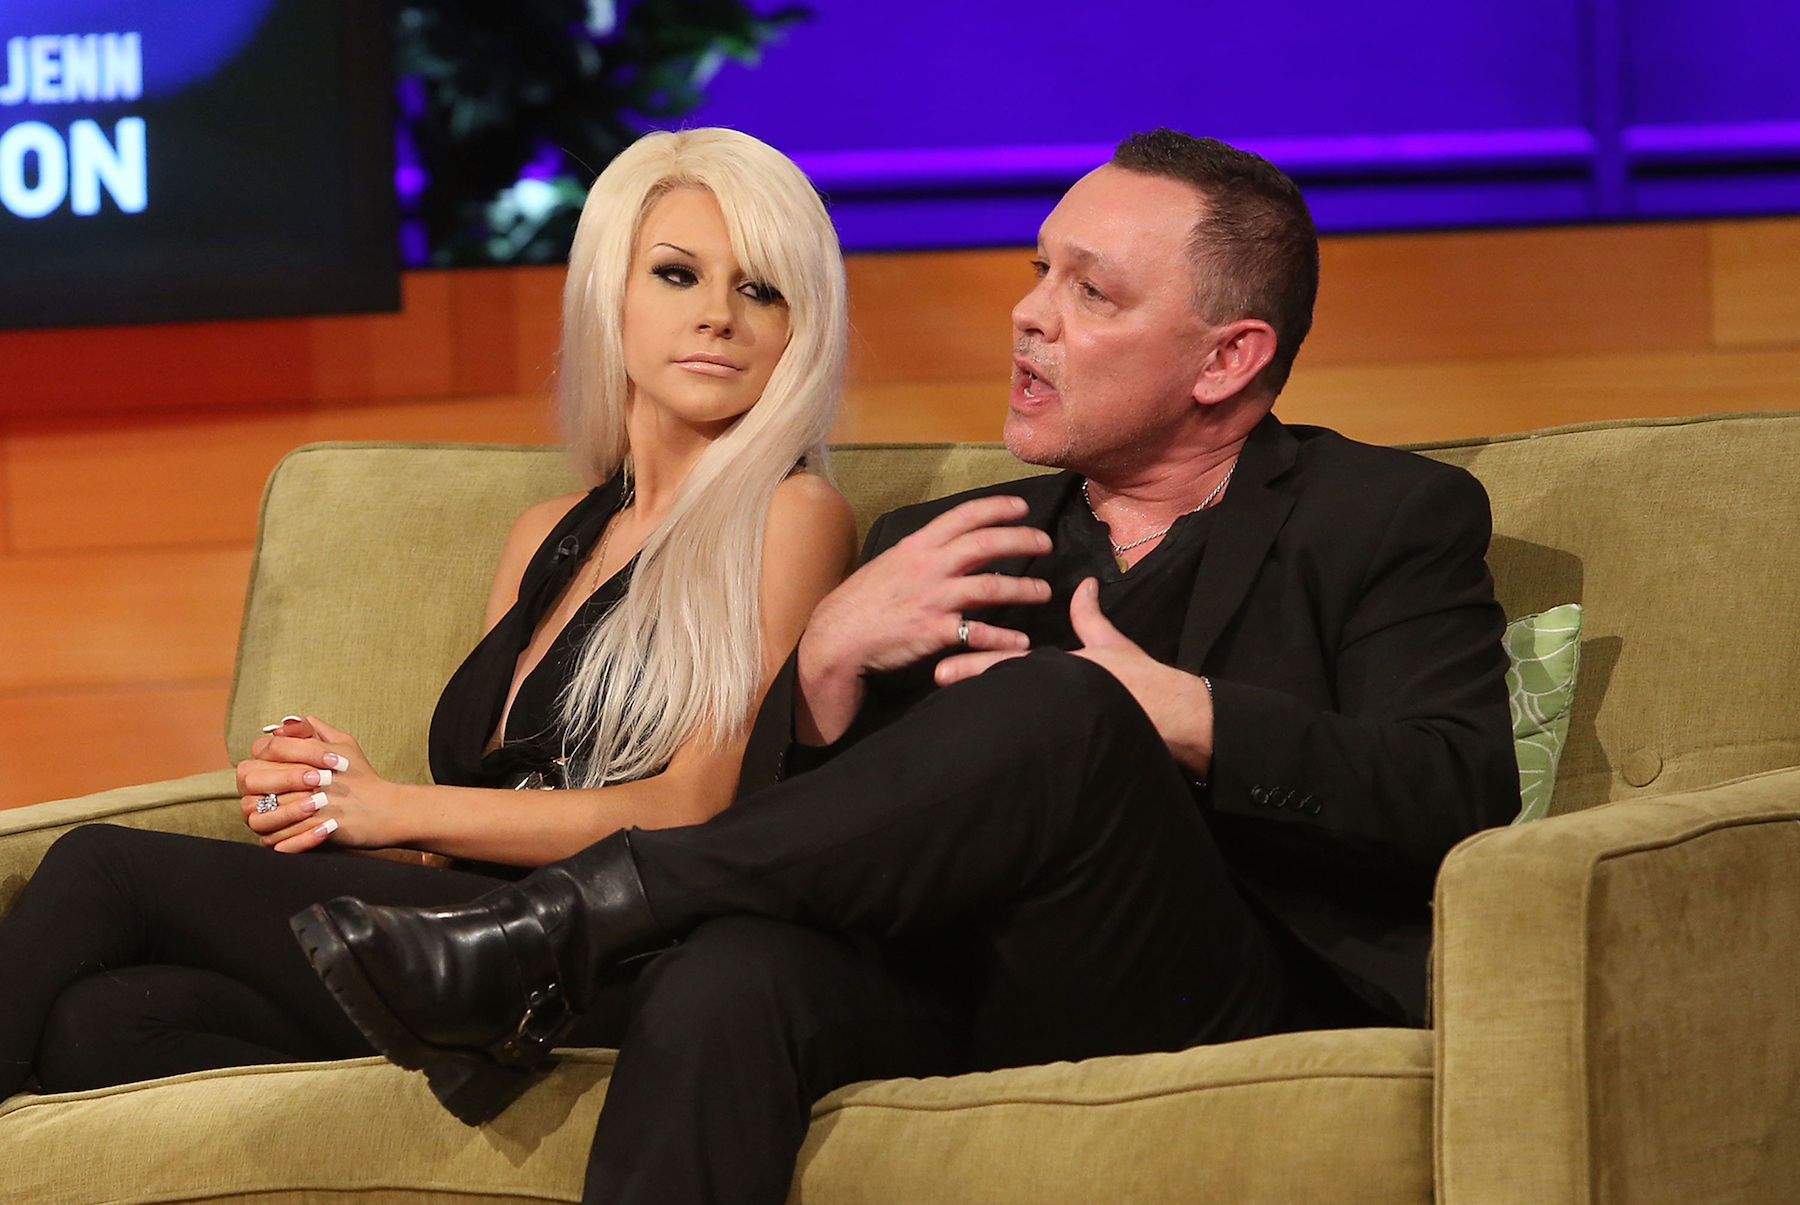 The lovebirds in better days, on VH1's Couples Therapy in 2014.